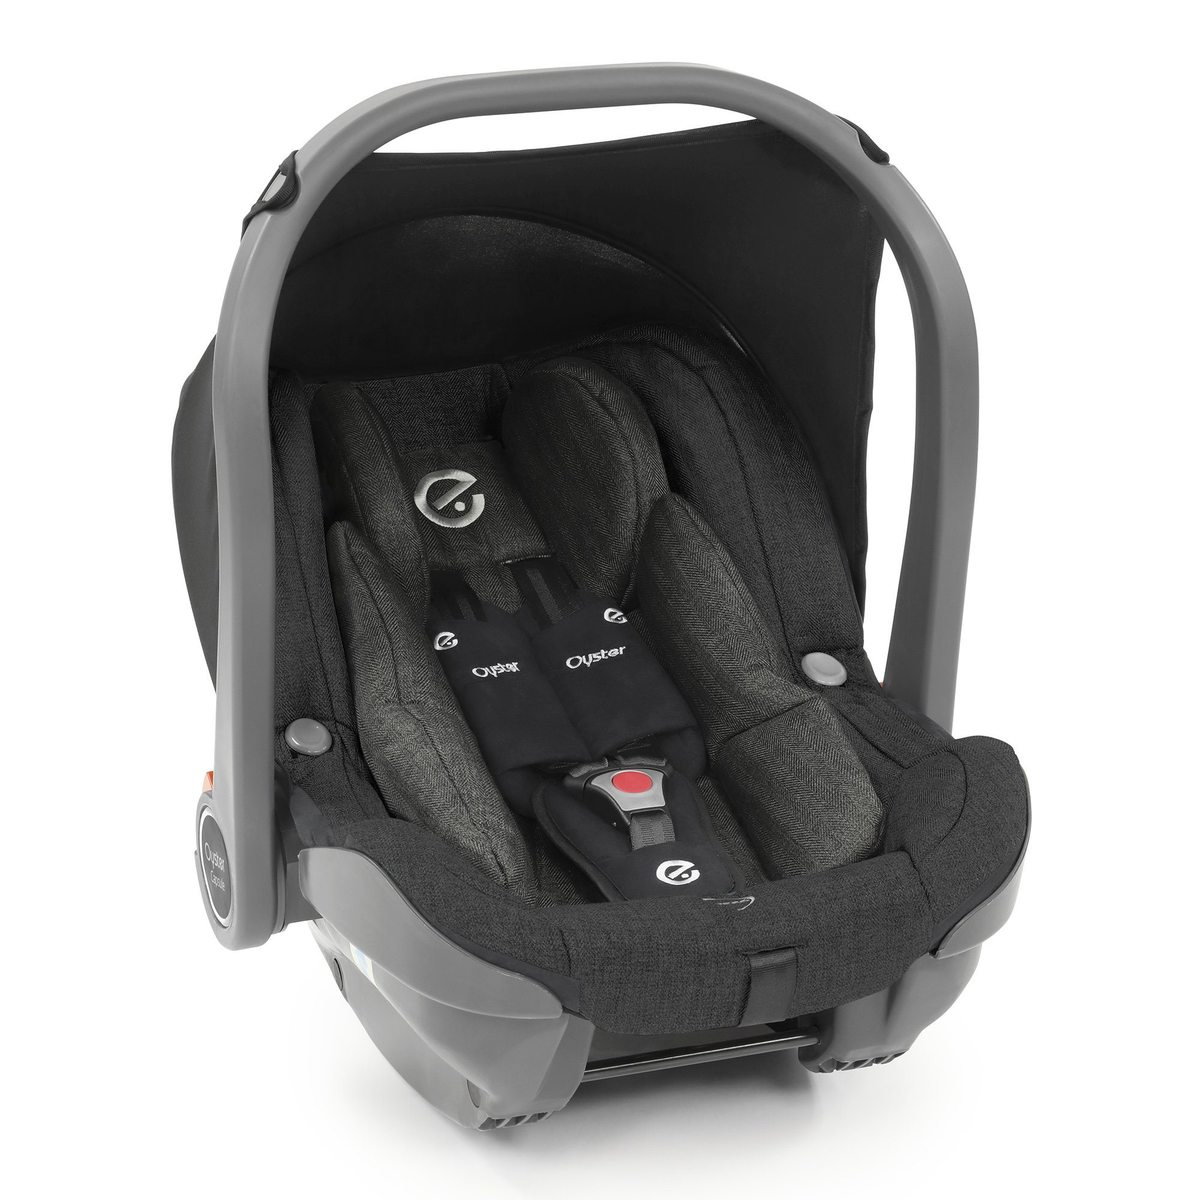 Babystyle Oyster 3 Luxury 7 Piece Package Caviar Includes Capsule Car Seat